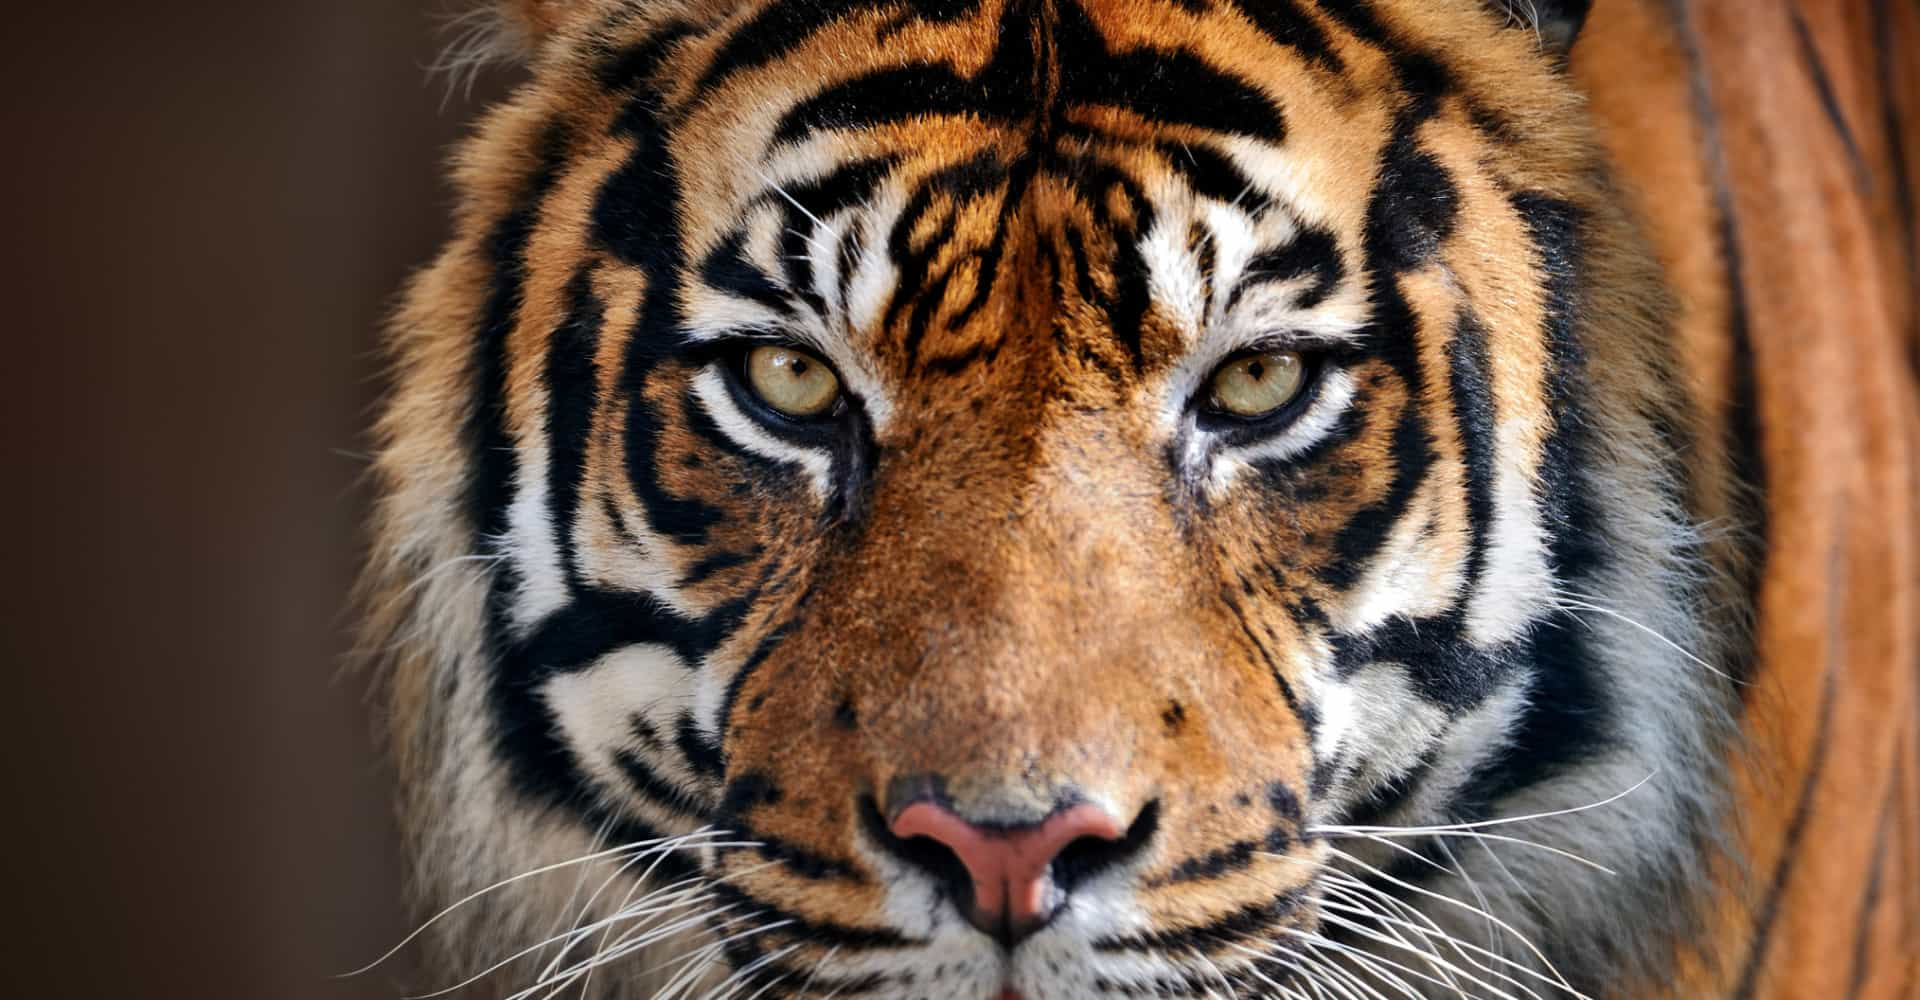 Imminent risk: the animals closest to extinction